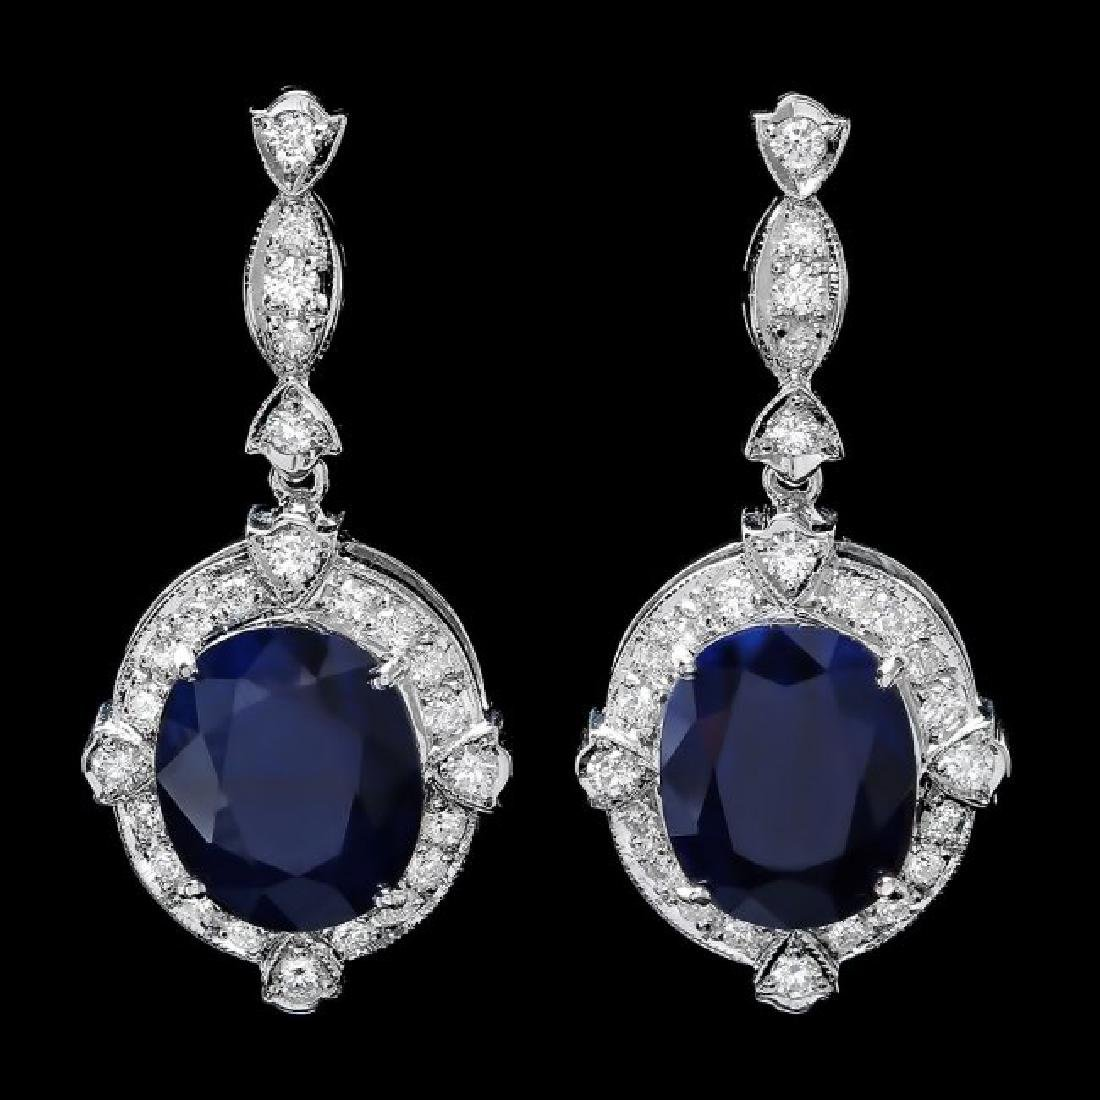 14k Gold 21ct Sapphire 1.70ct Diamond Earrings - 3